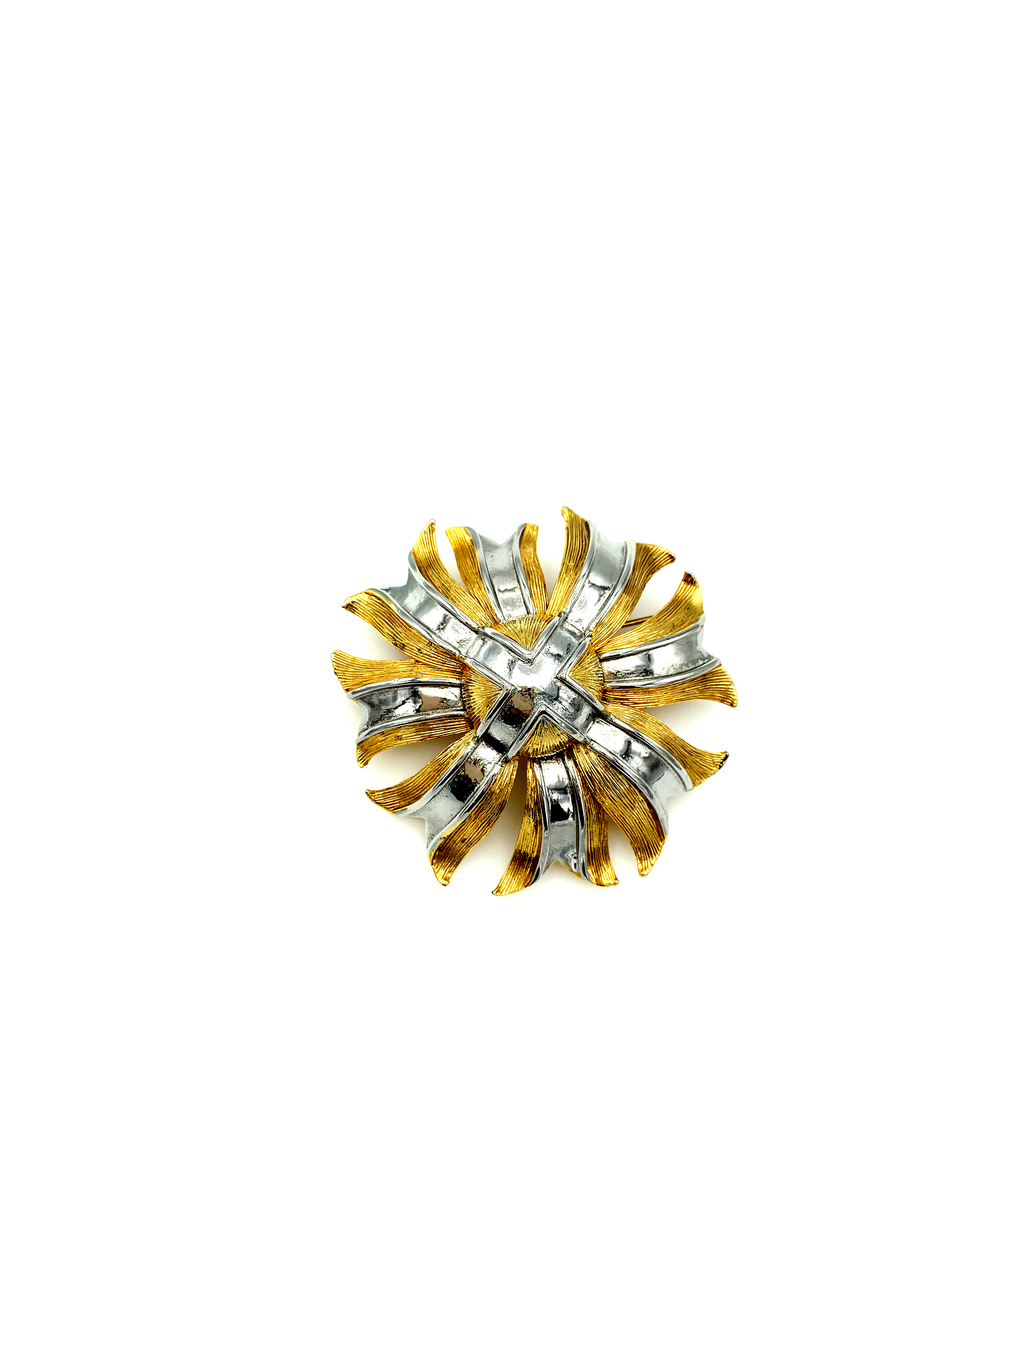 Lisner Vintage Gold & Silver Floral Cross Classic Pin Brooch